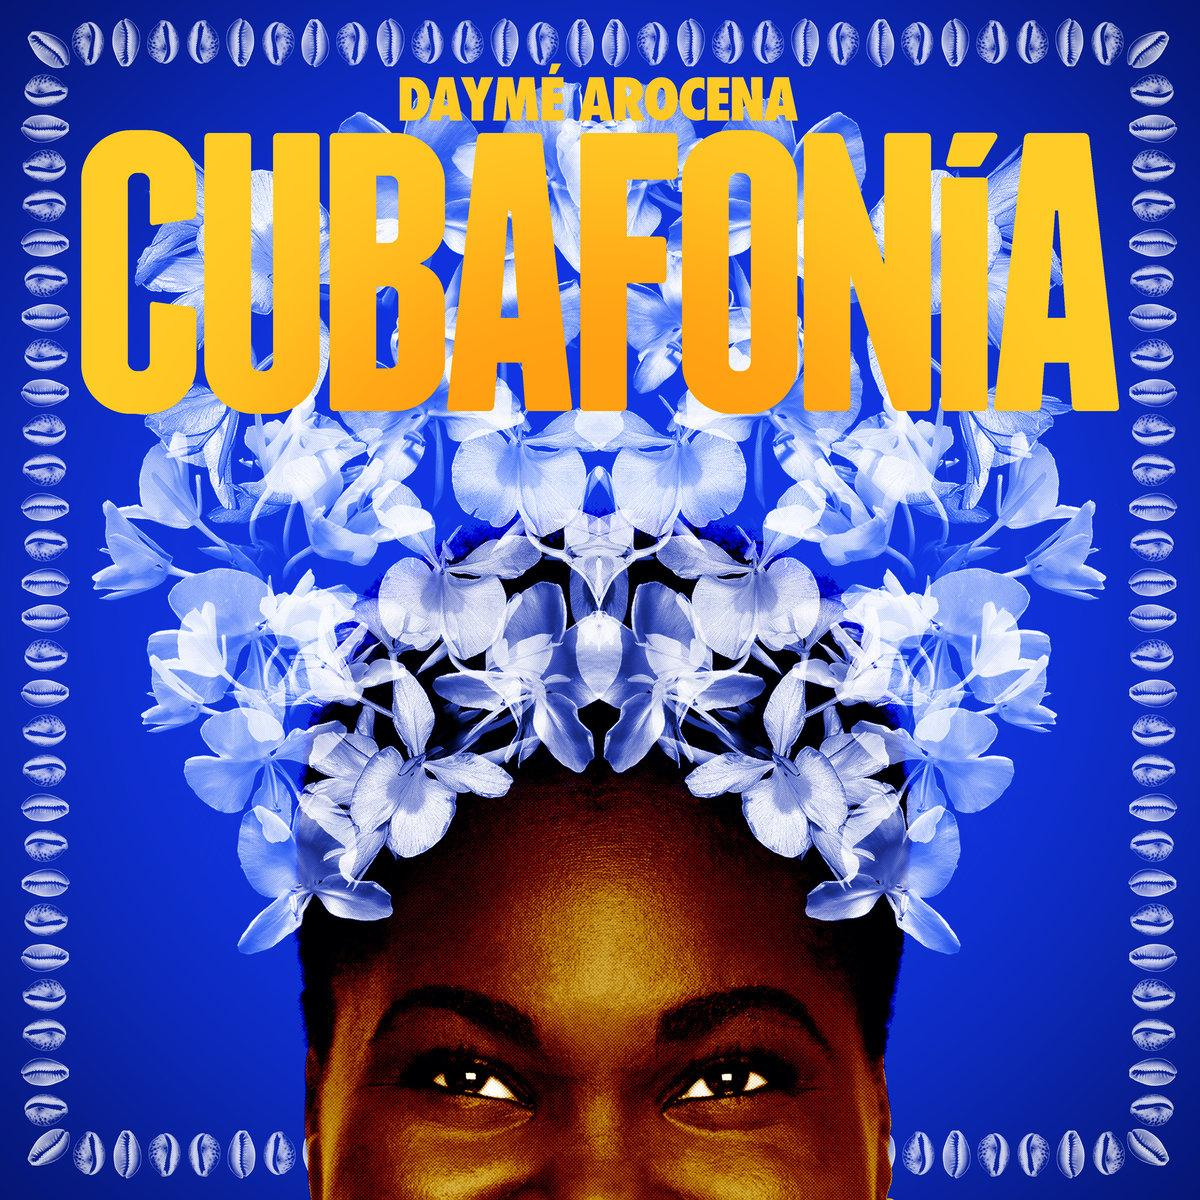 Image result for cubafonia dayme arocena